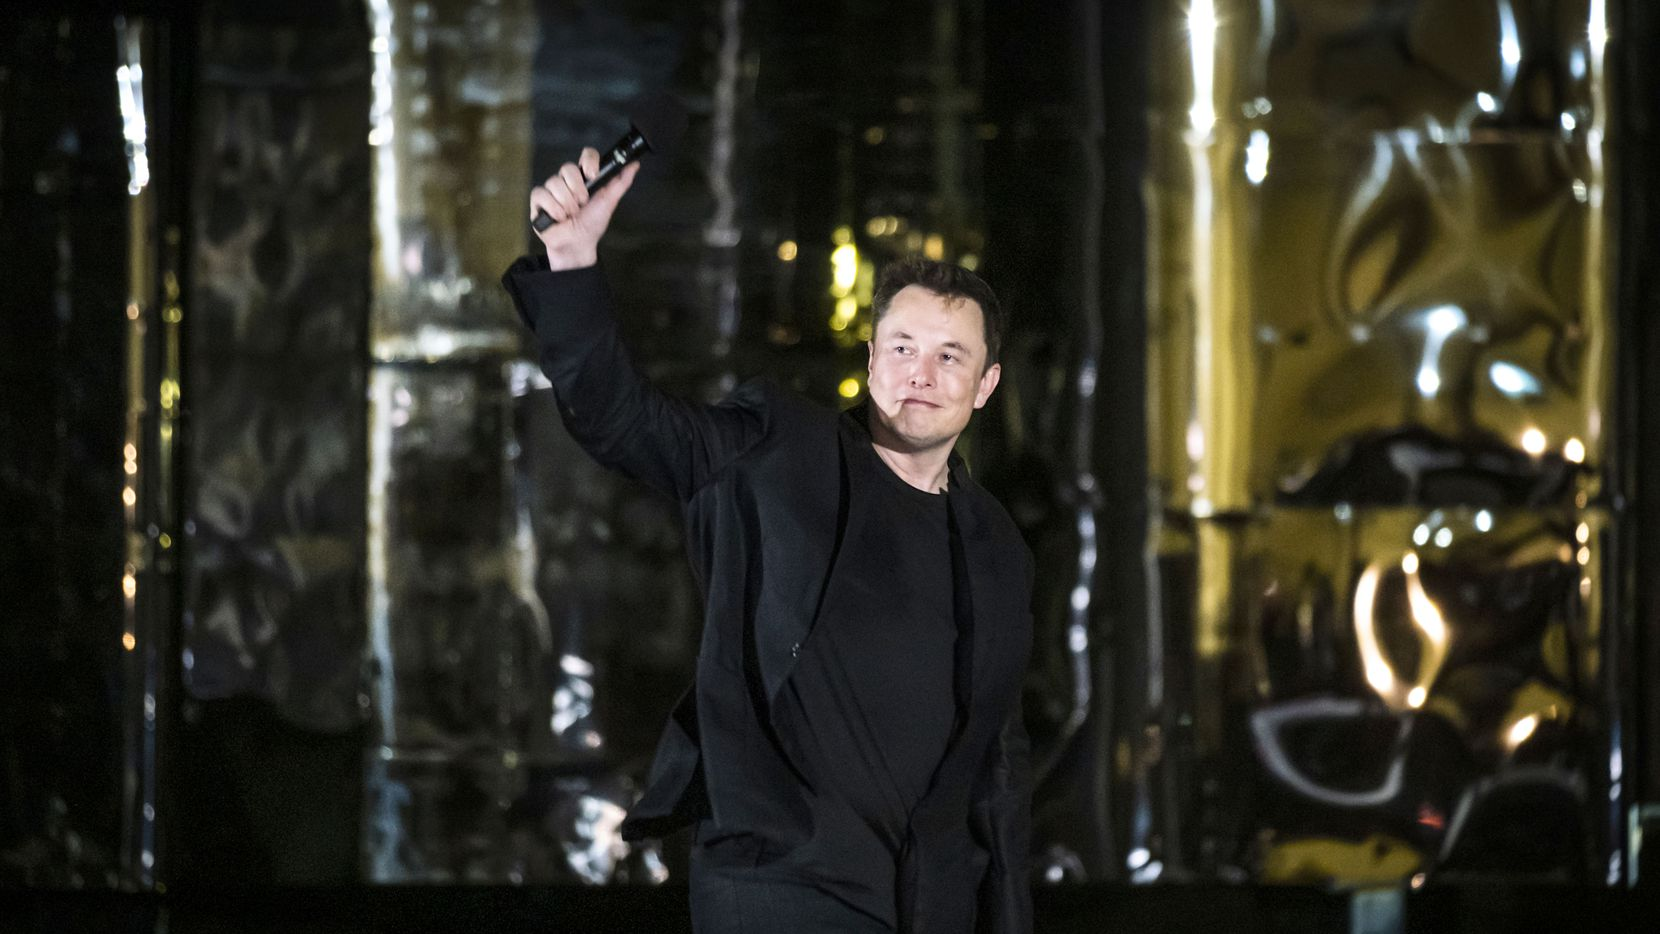 SpaceX founder Elon Musk makes a presentation in front of a prototype of the Starship spacecraft at the SpaceX Space Launch Facility in Boca Chica, Texas, on Saturday, Sept. 28, 2019.